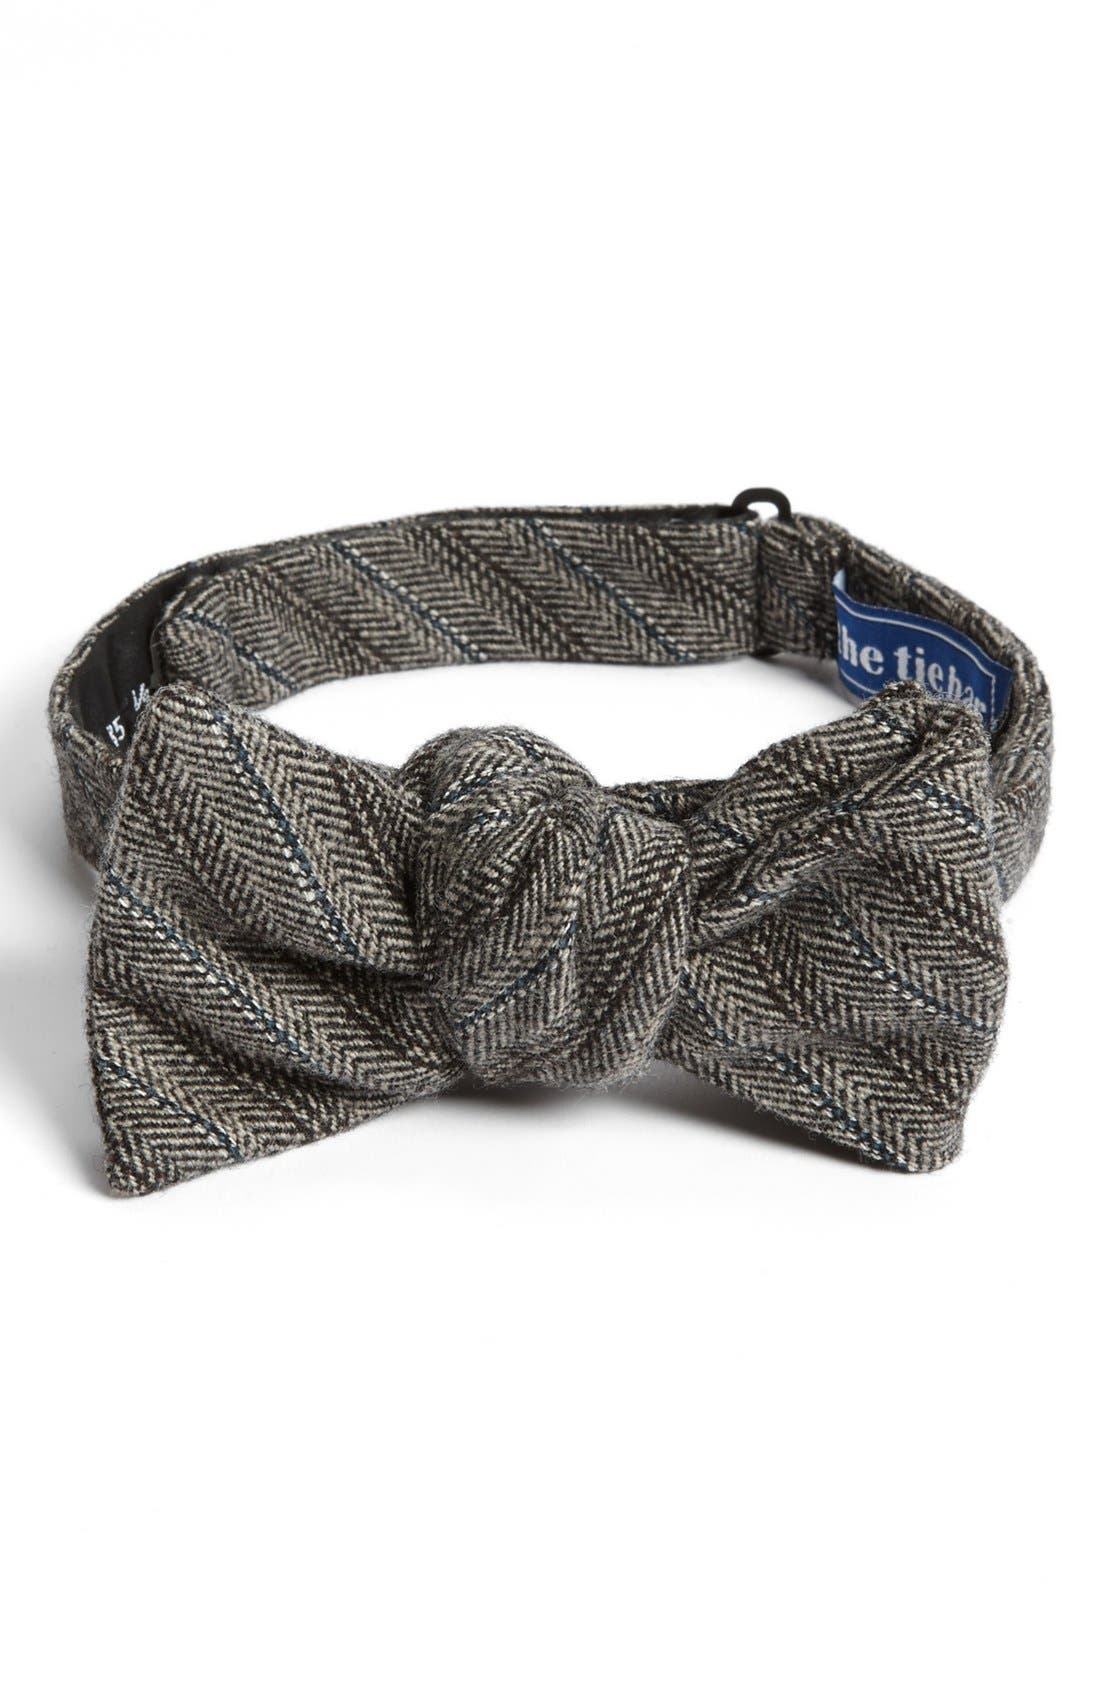 Main Image - The Tie Bar Wool Bow Tie